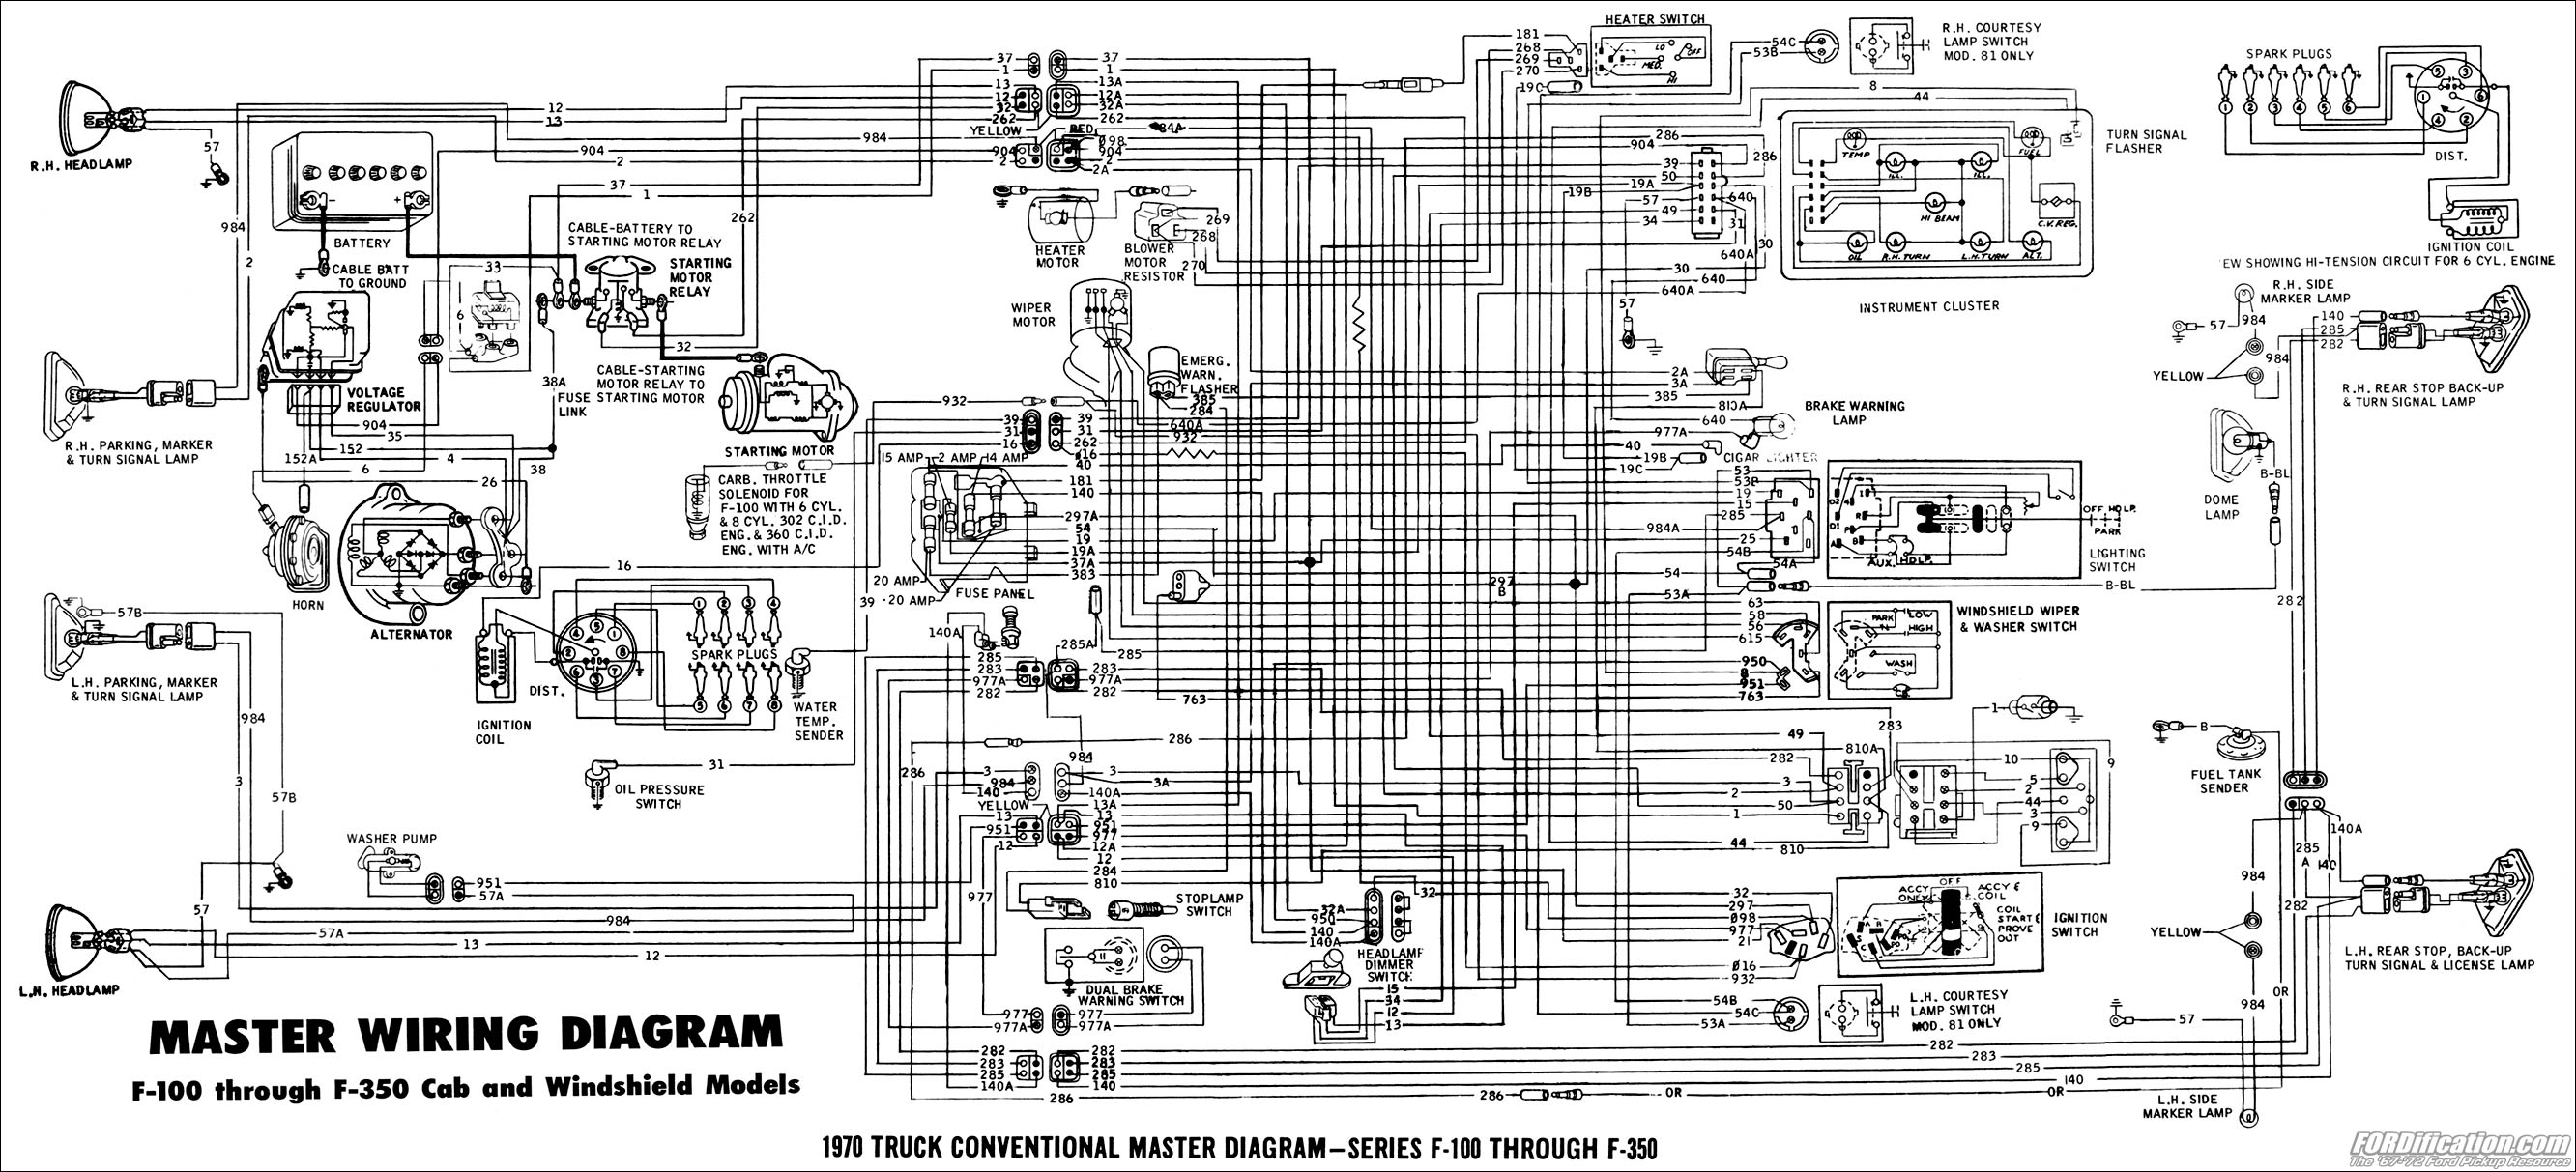 Ford Wire Diagrams Detailed Schematics Diagram Radio 1966 Mustang Wiring 1988 For F250 Simple 800 Tractor